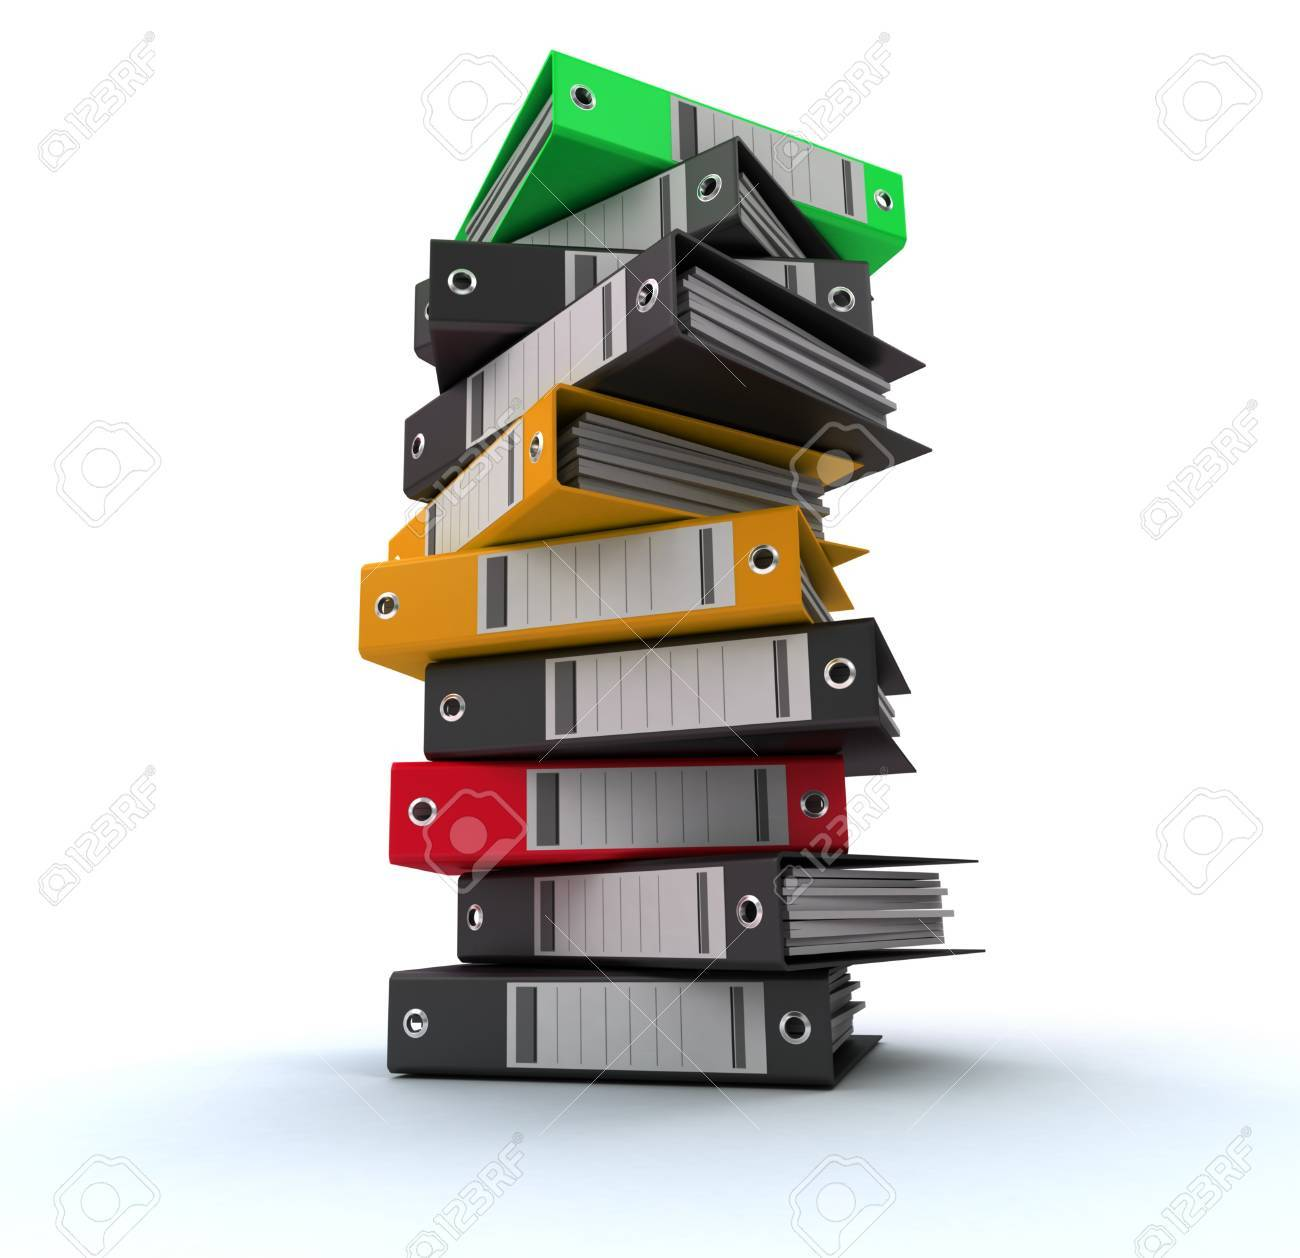 3D rendering of a pile of office ring binders Stock Photo - 13230351